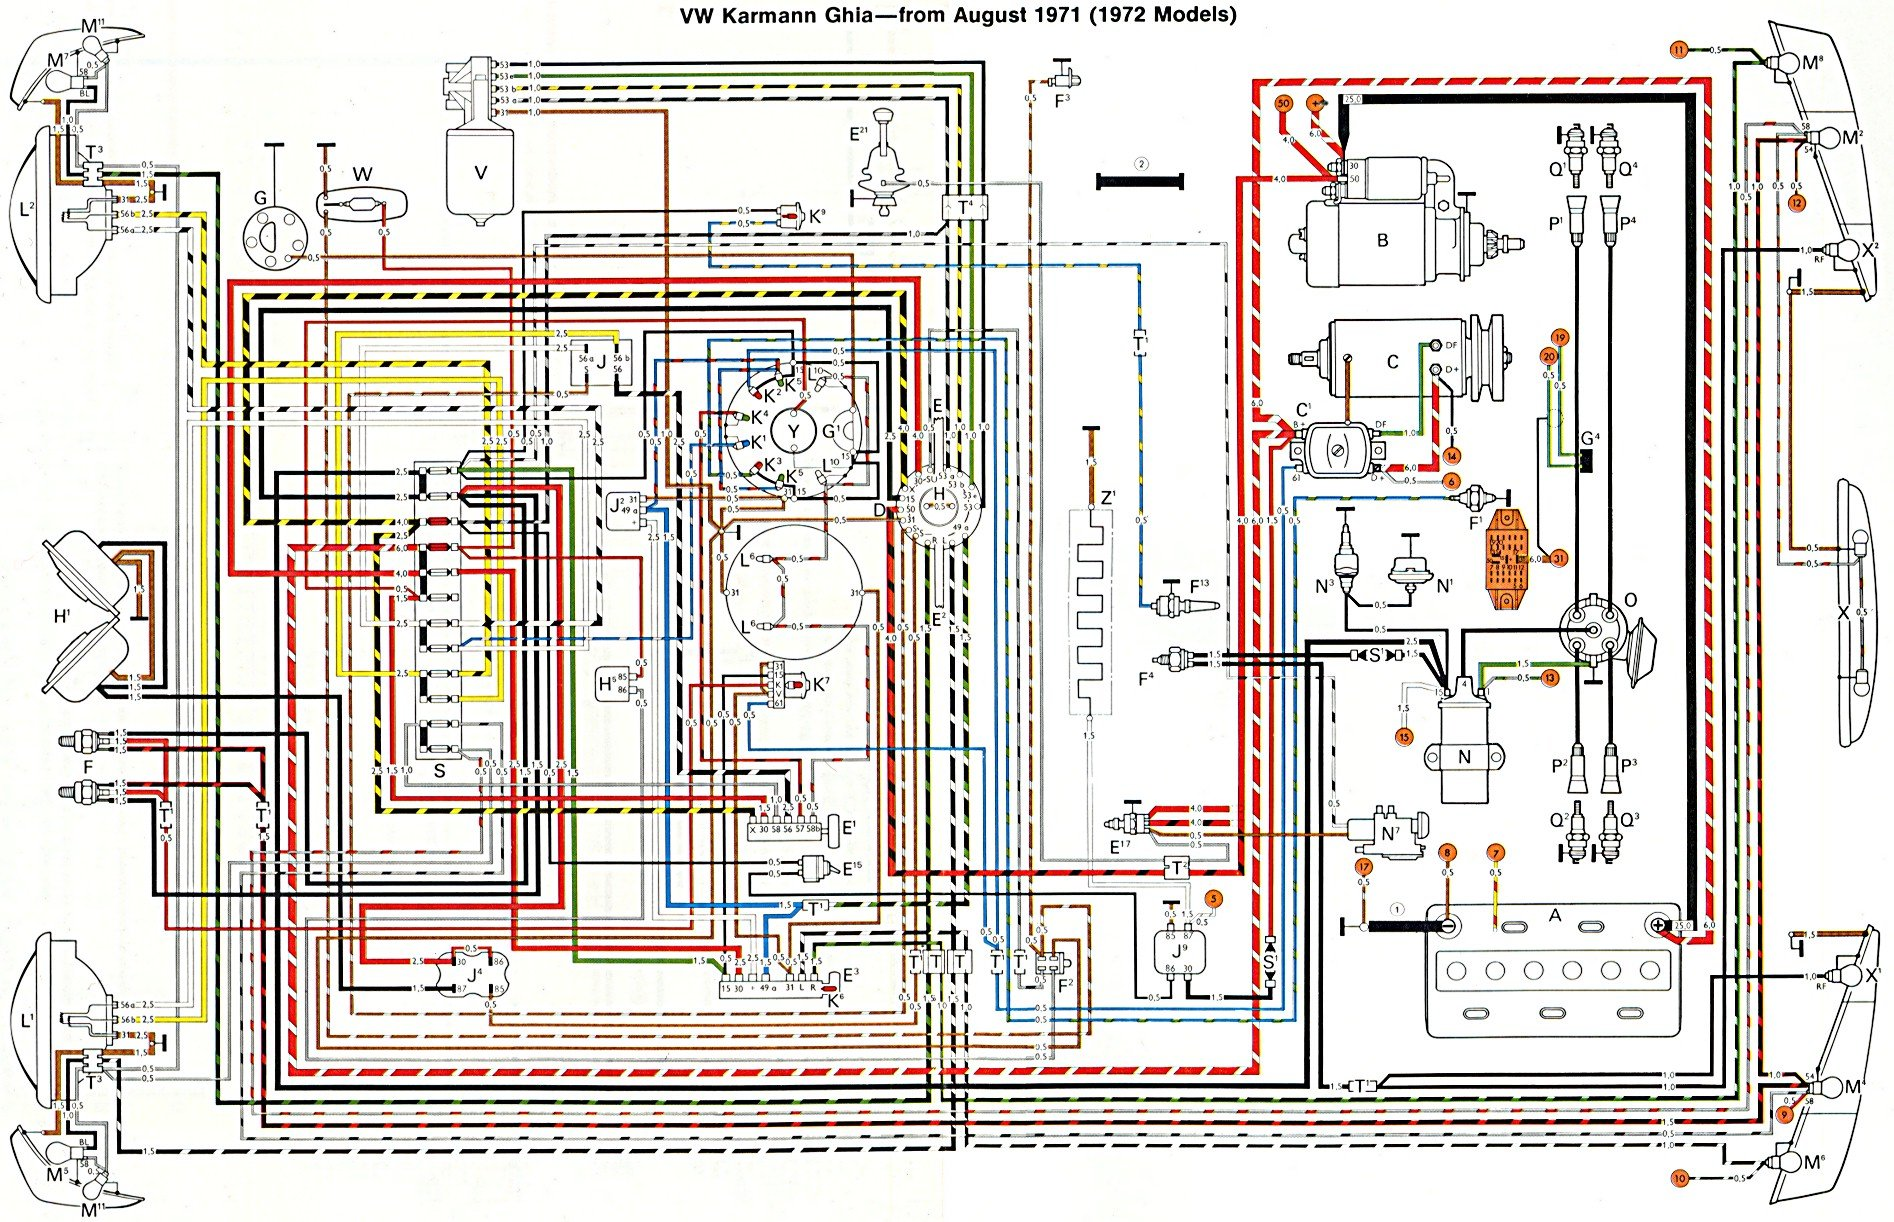 72ghia thesamba com karmann ghia wiring diagrams 1971 karmann ghia wiring diagram at webbmarketing.co